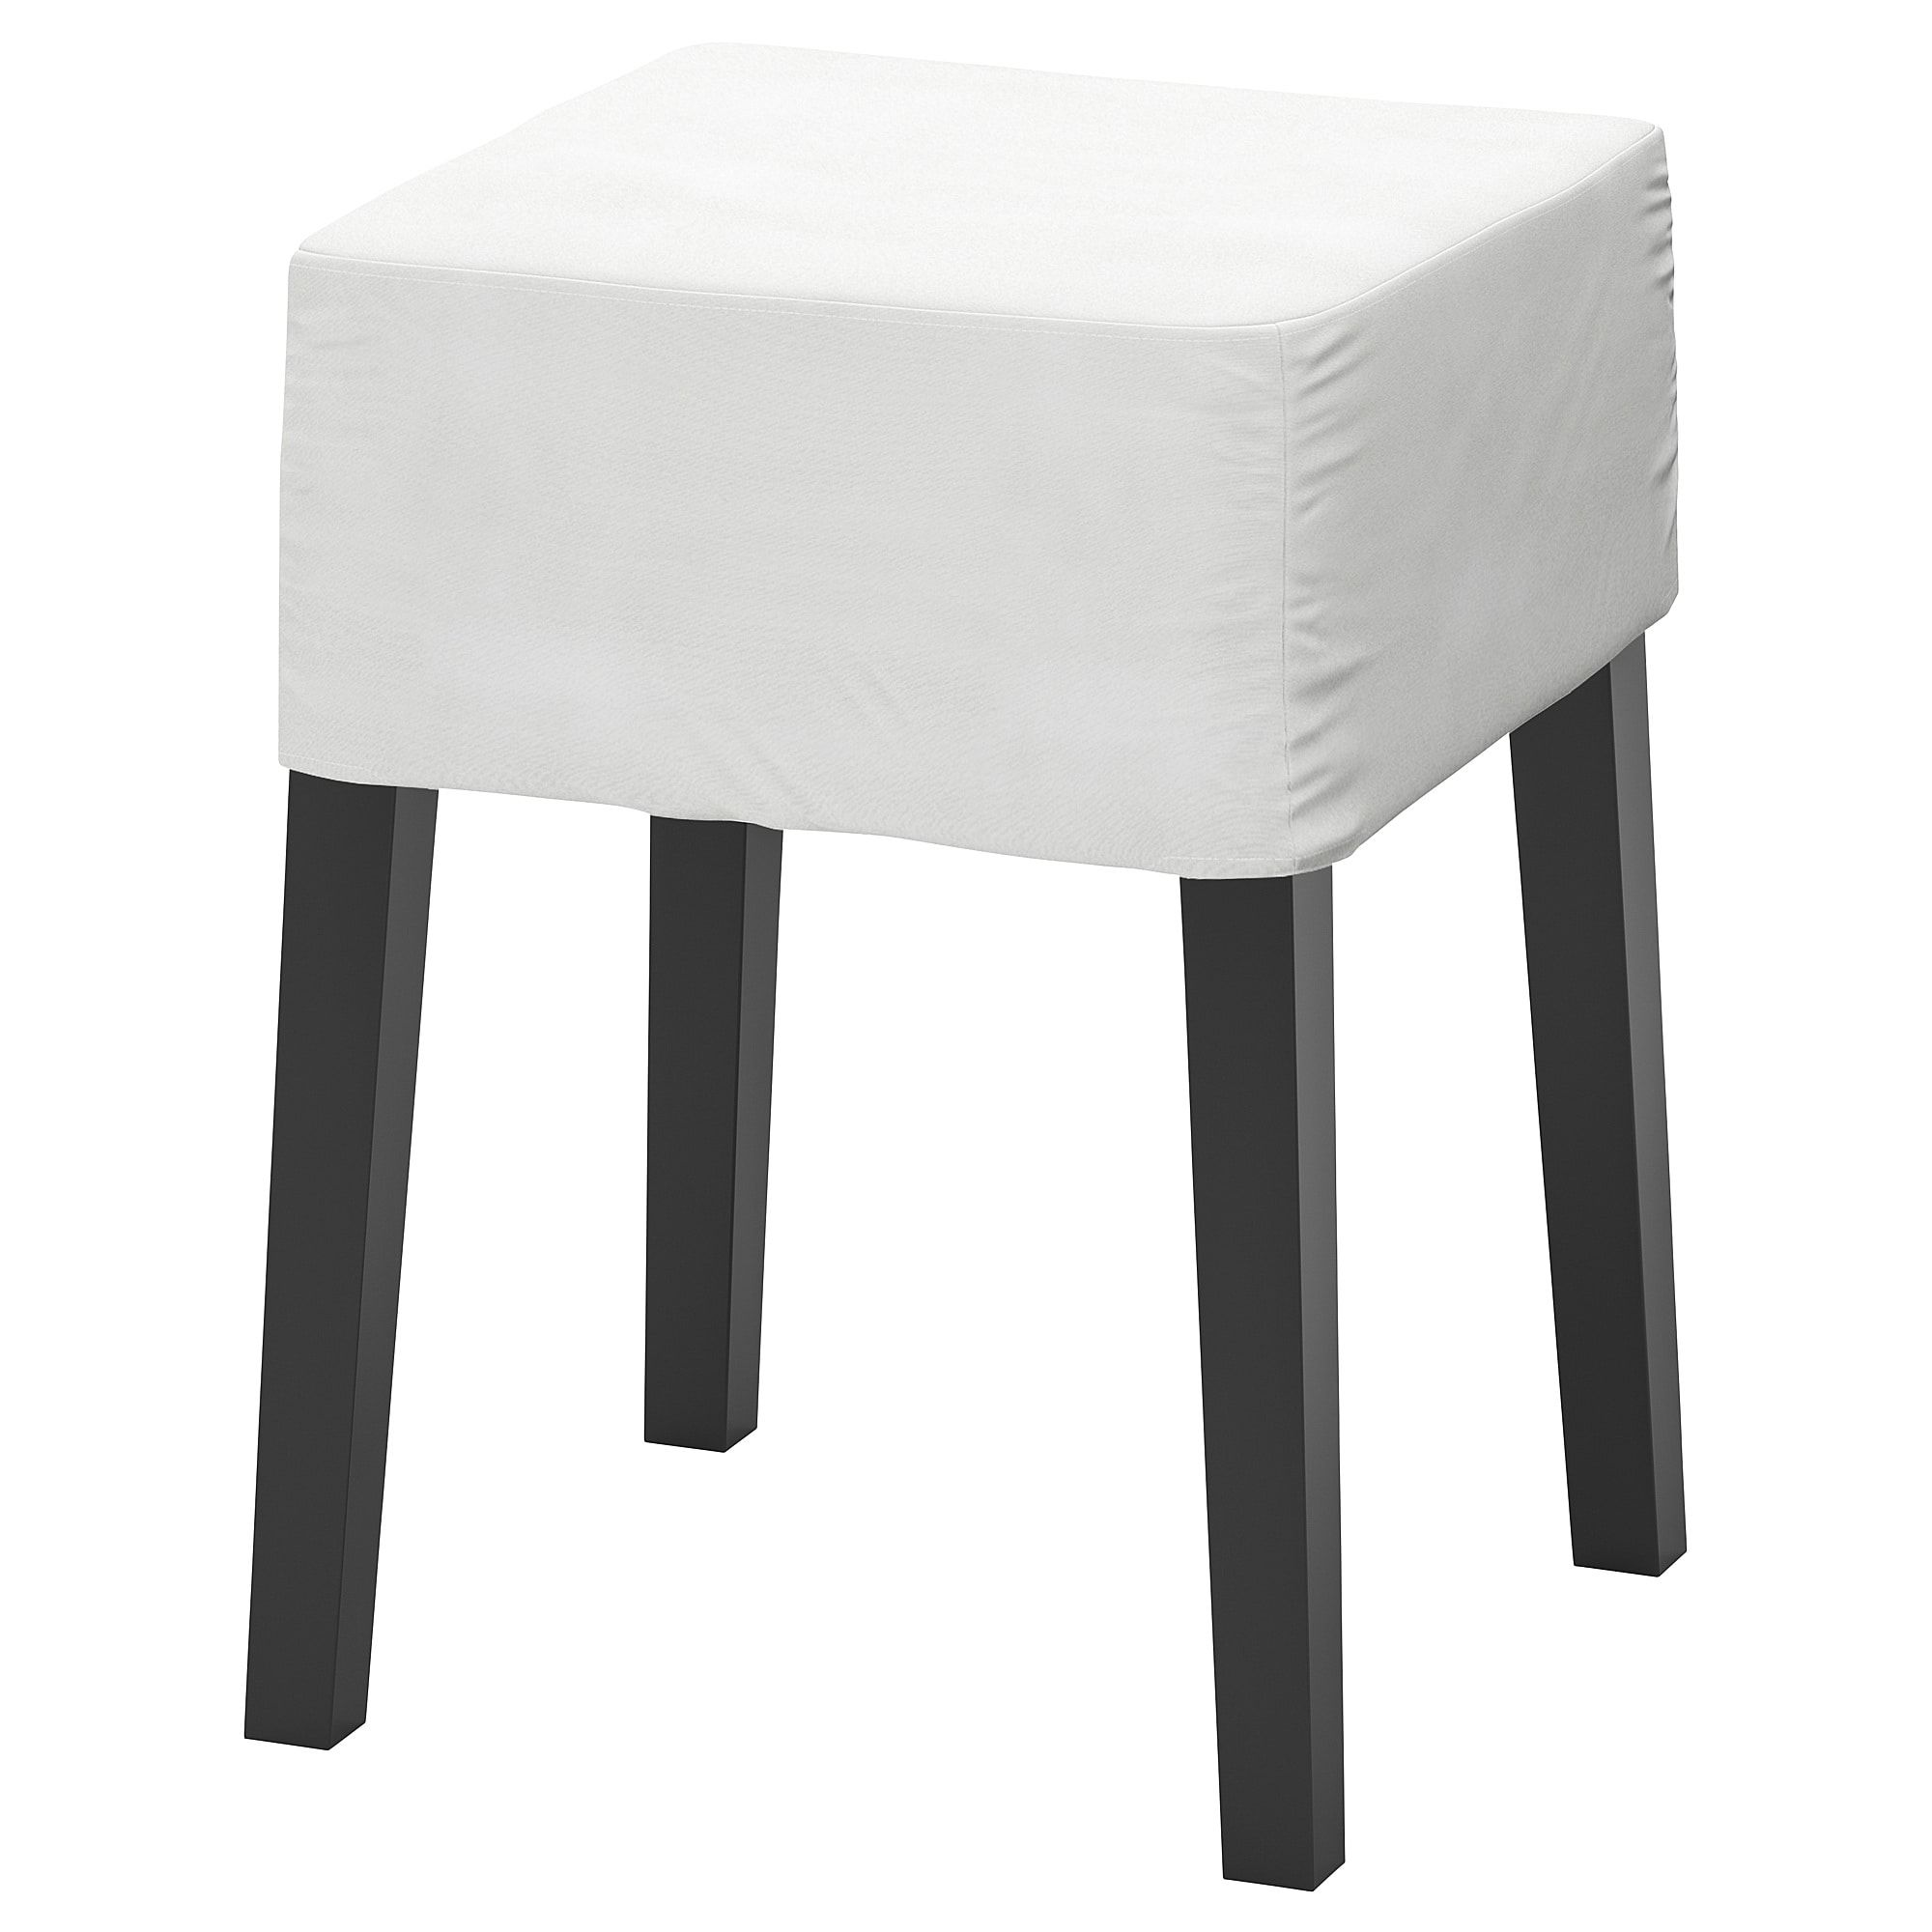 Phenomenal Ikea Nils Black Stool Frame In 2019 Products Ikea Stool Onthecornerstone Fun Painted Chair Ideas Images Onthecornerstoneorg